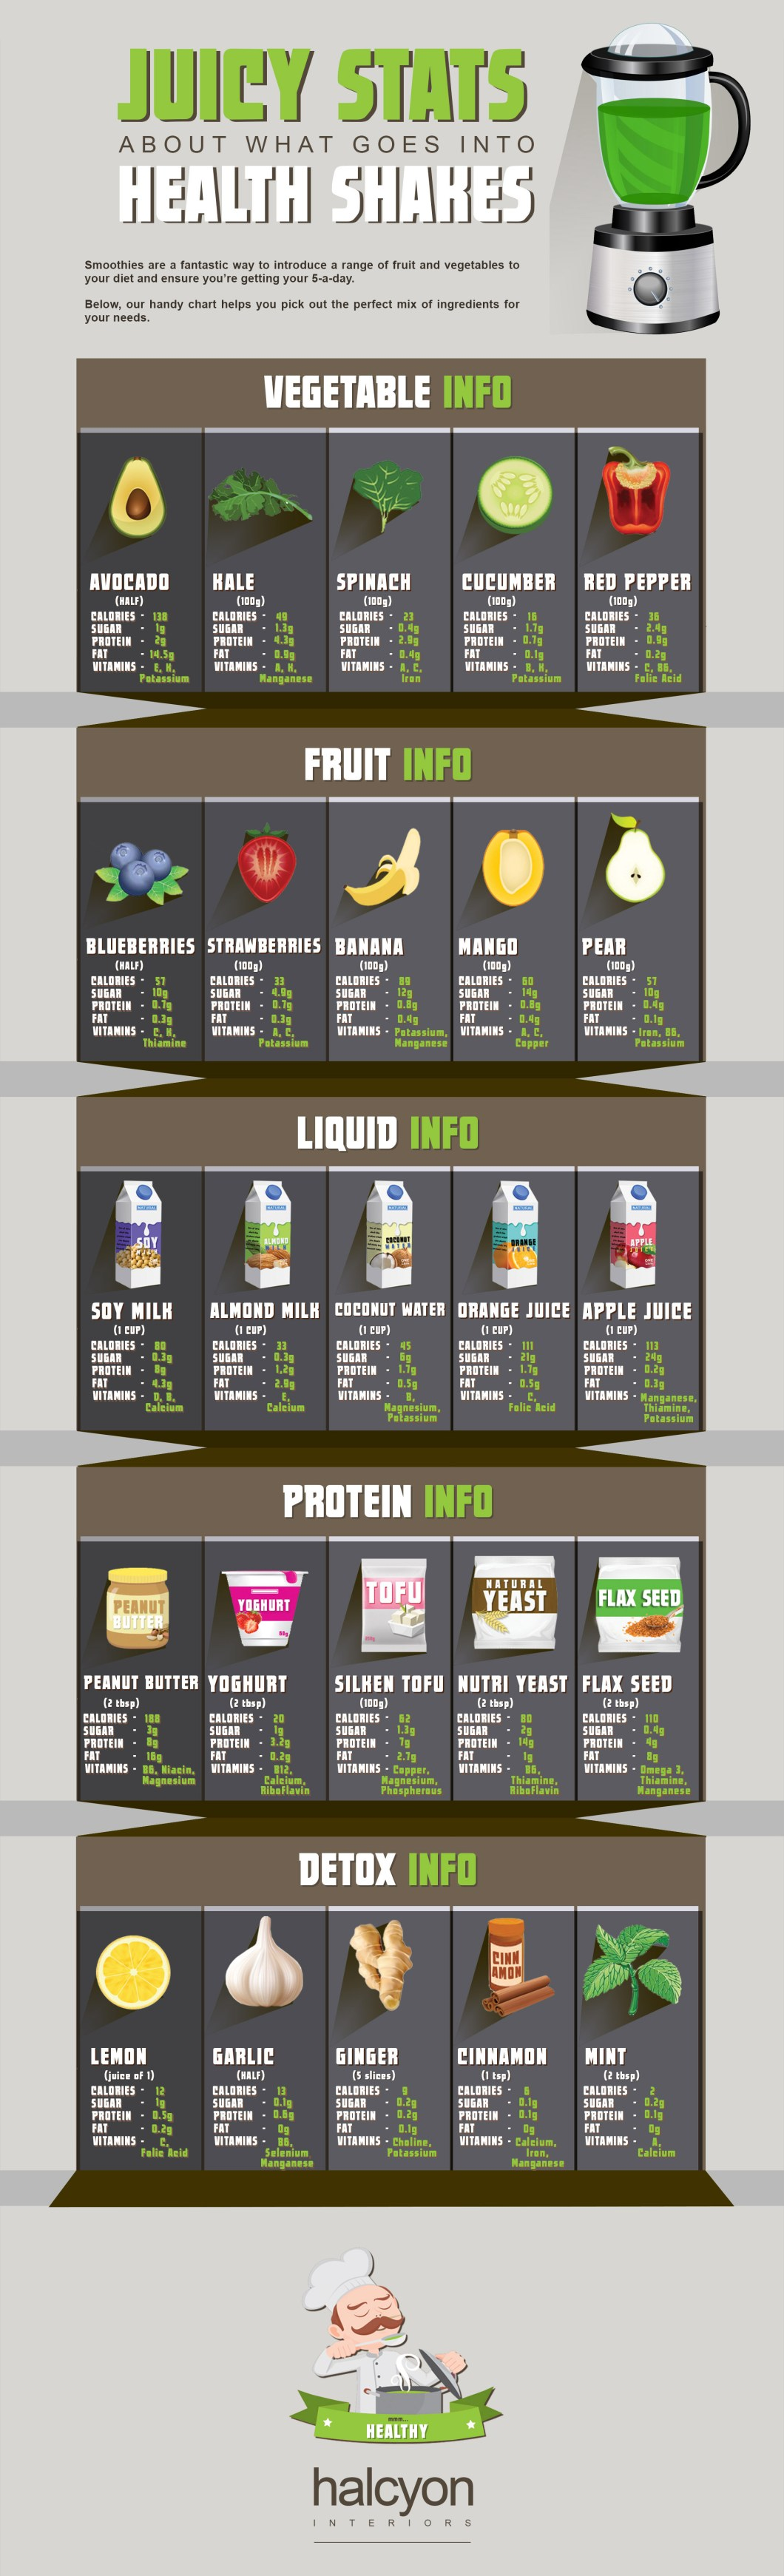 Know the Nutrient Value of Your Health Shake: Handy Measuring Guide - Infographic